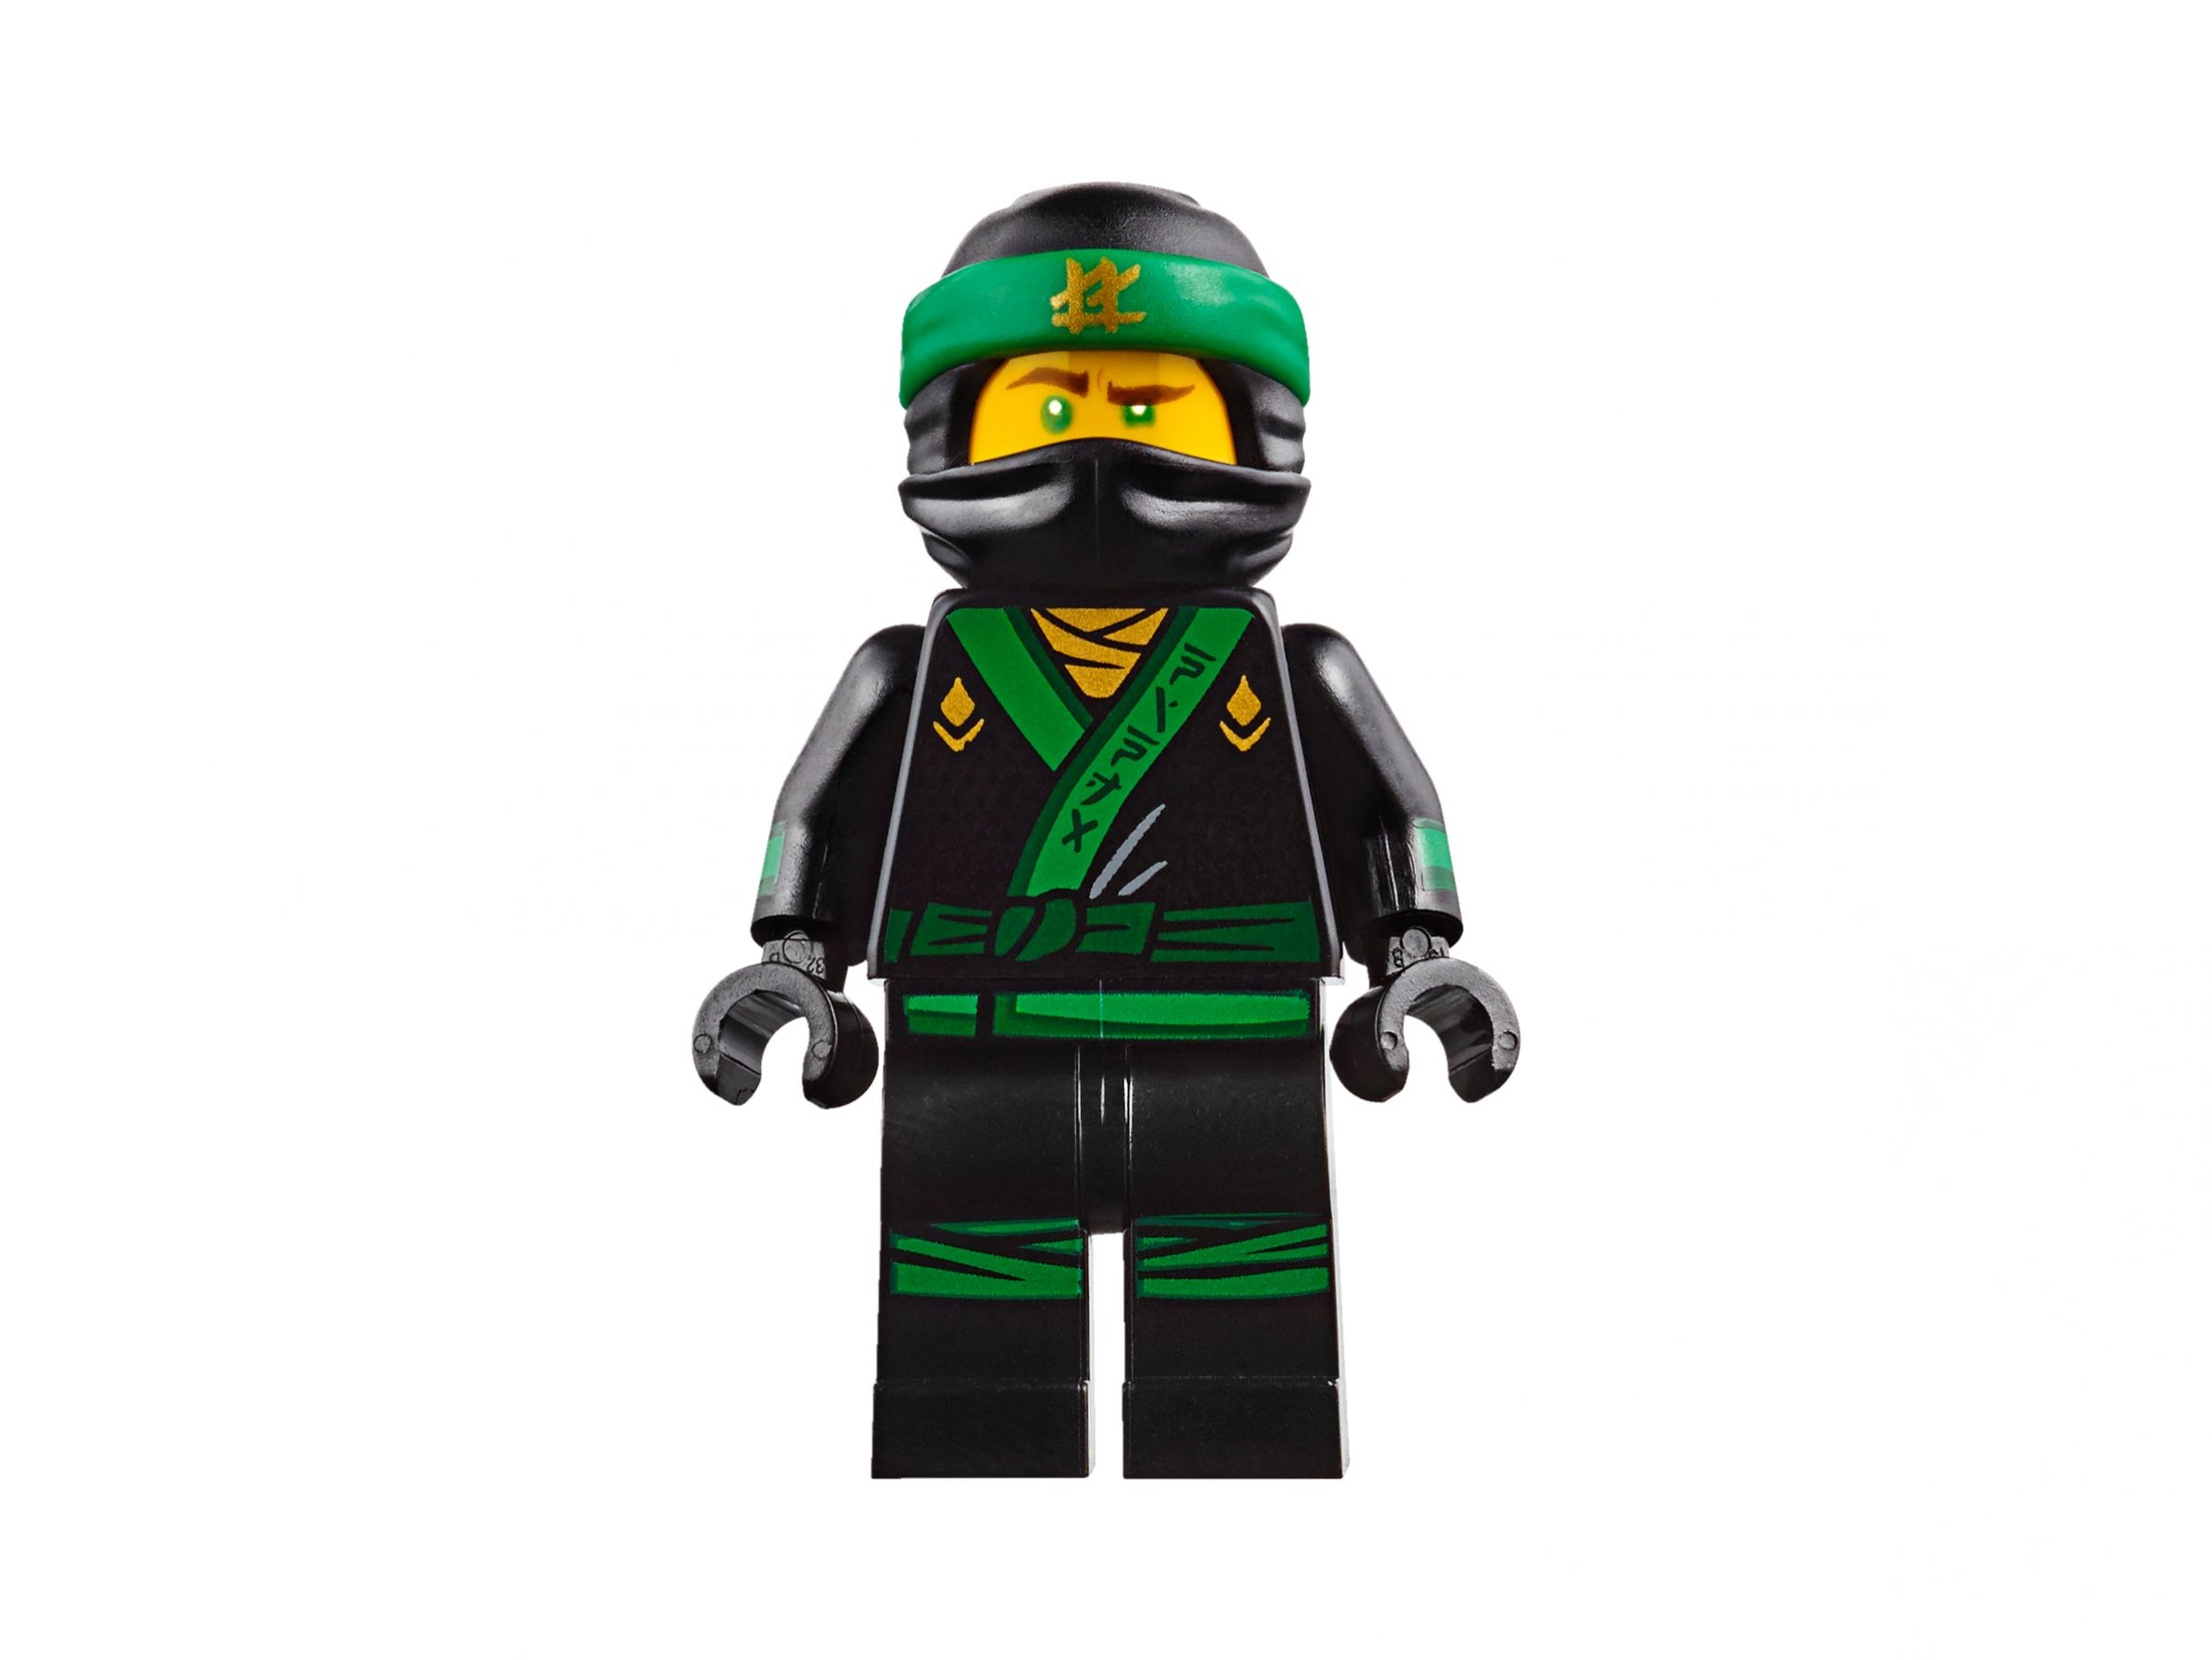 LEGO The LEGO Ninjago Movie 70656 Garmadon, Garmadon, GARMADON! LEGO_70656_alt11.jpg